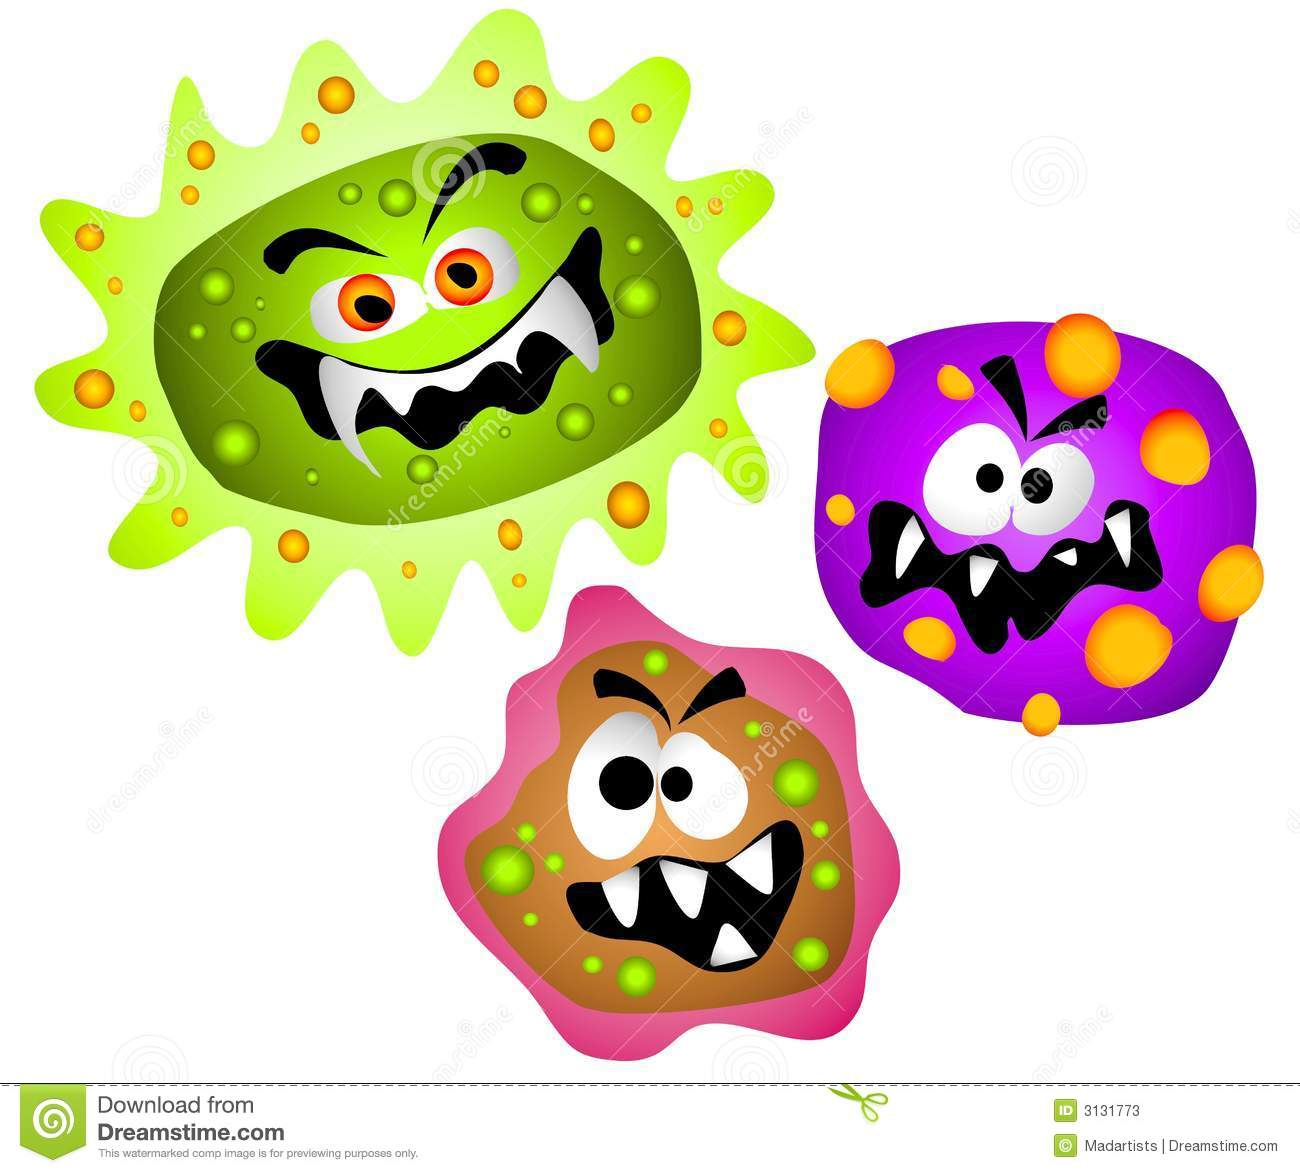 Bacteria clipart 1 » Clipart Station.